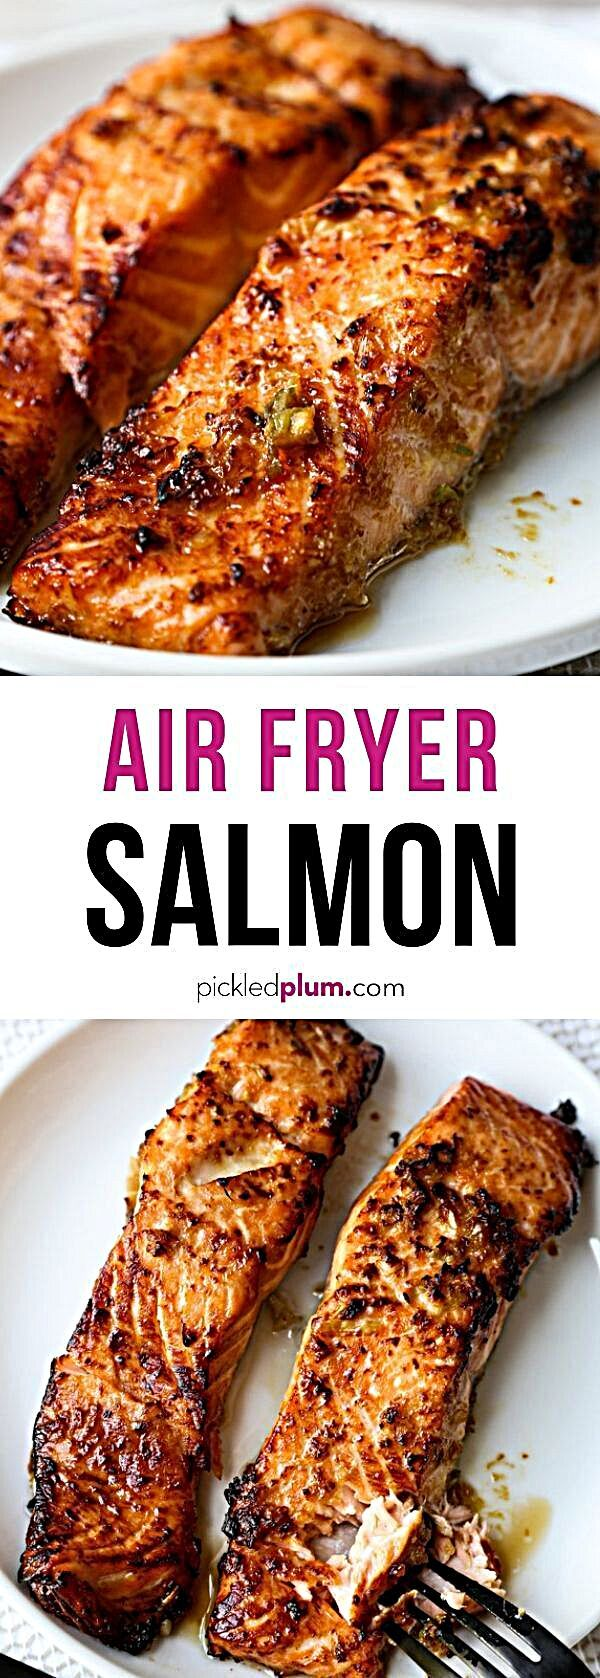 Marinated in a simple ginger garlic sauce, these salmon fillets are crispy on the outside and perfec...